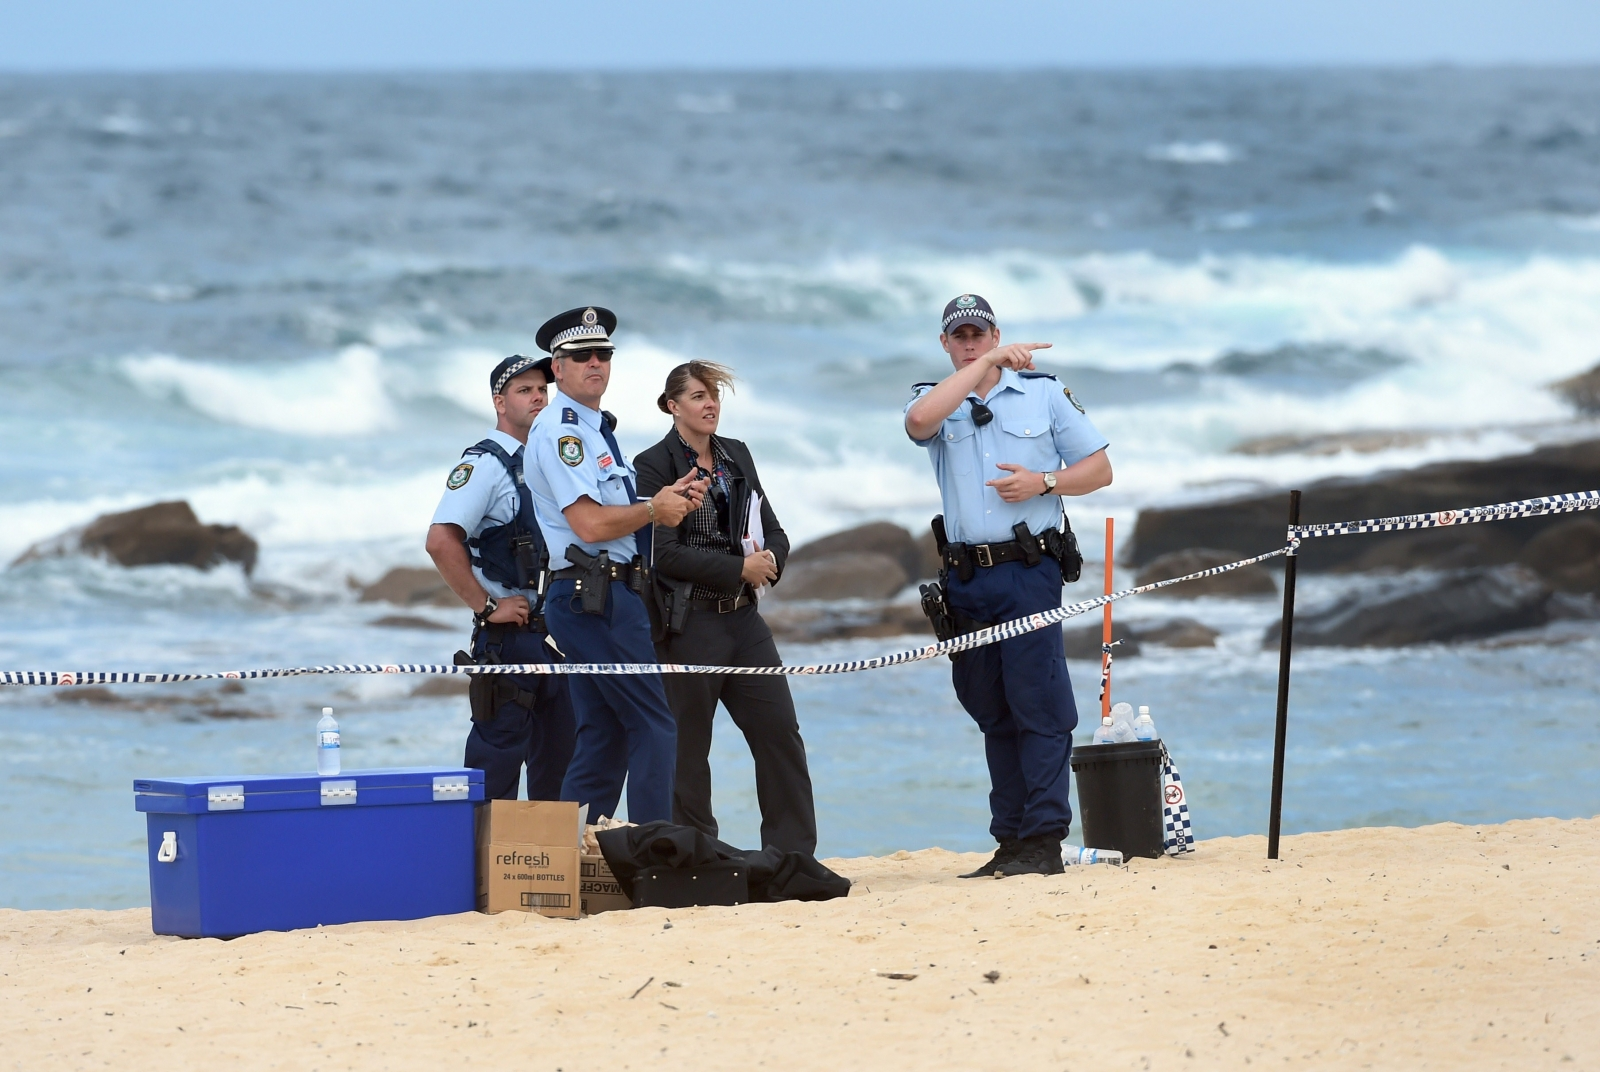 Police examine the place where two boys found the body of a dead baby in Maroubra Beach, Sydney. (WILLIAM WEST/AFP/Getty Images)